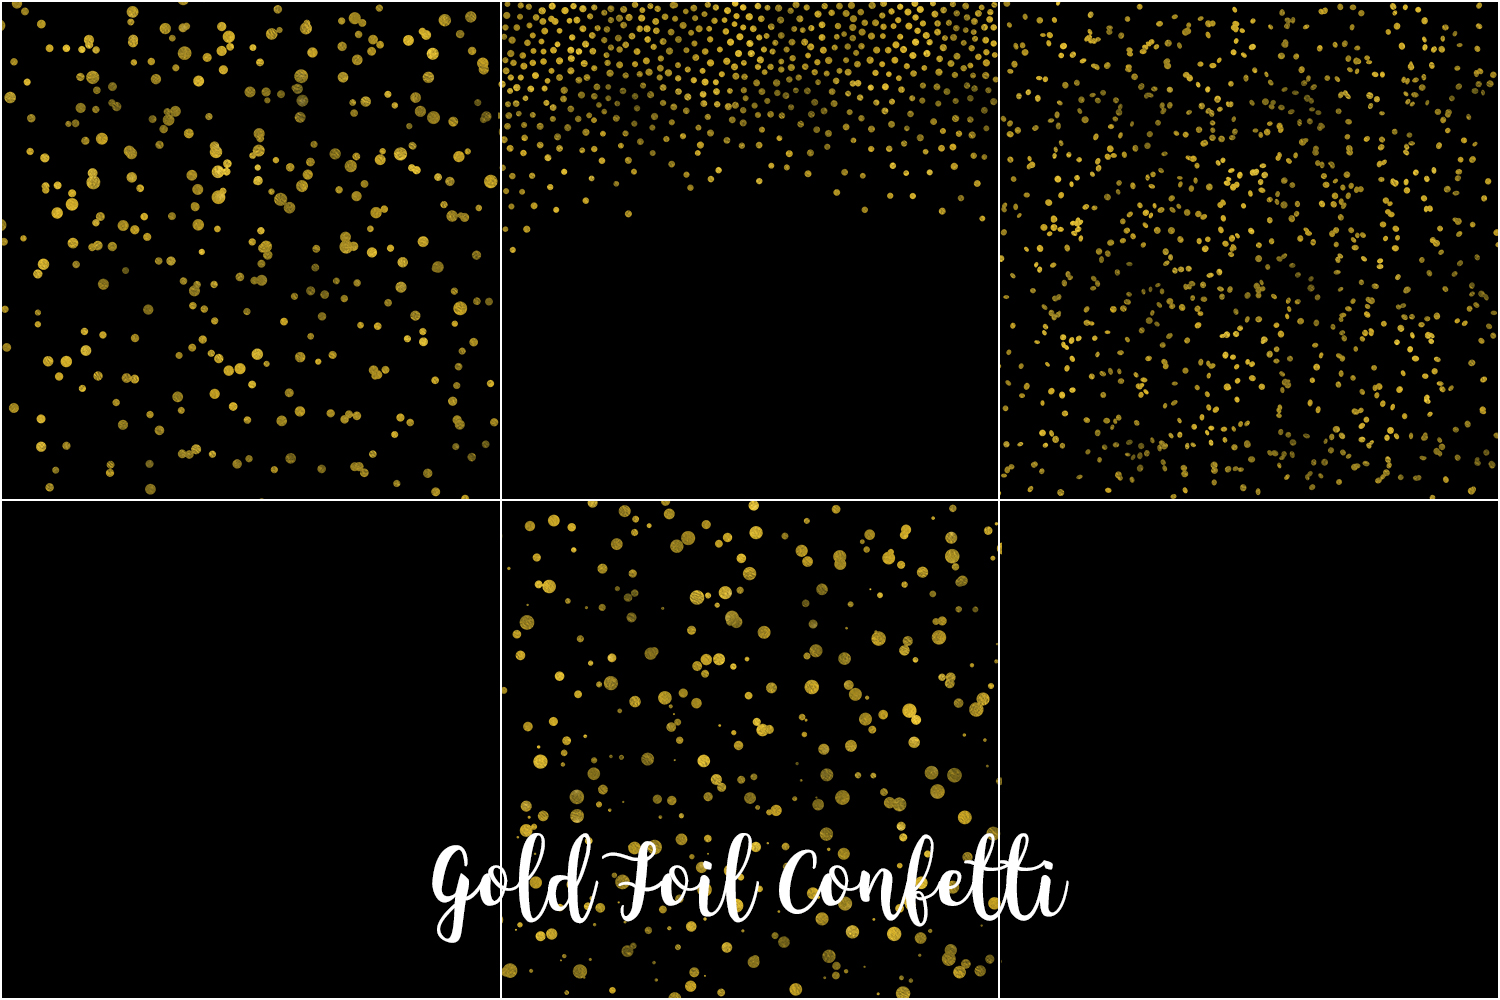 Gold Foil Confetti, Transparent PNG example image 3